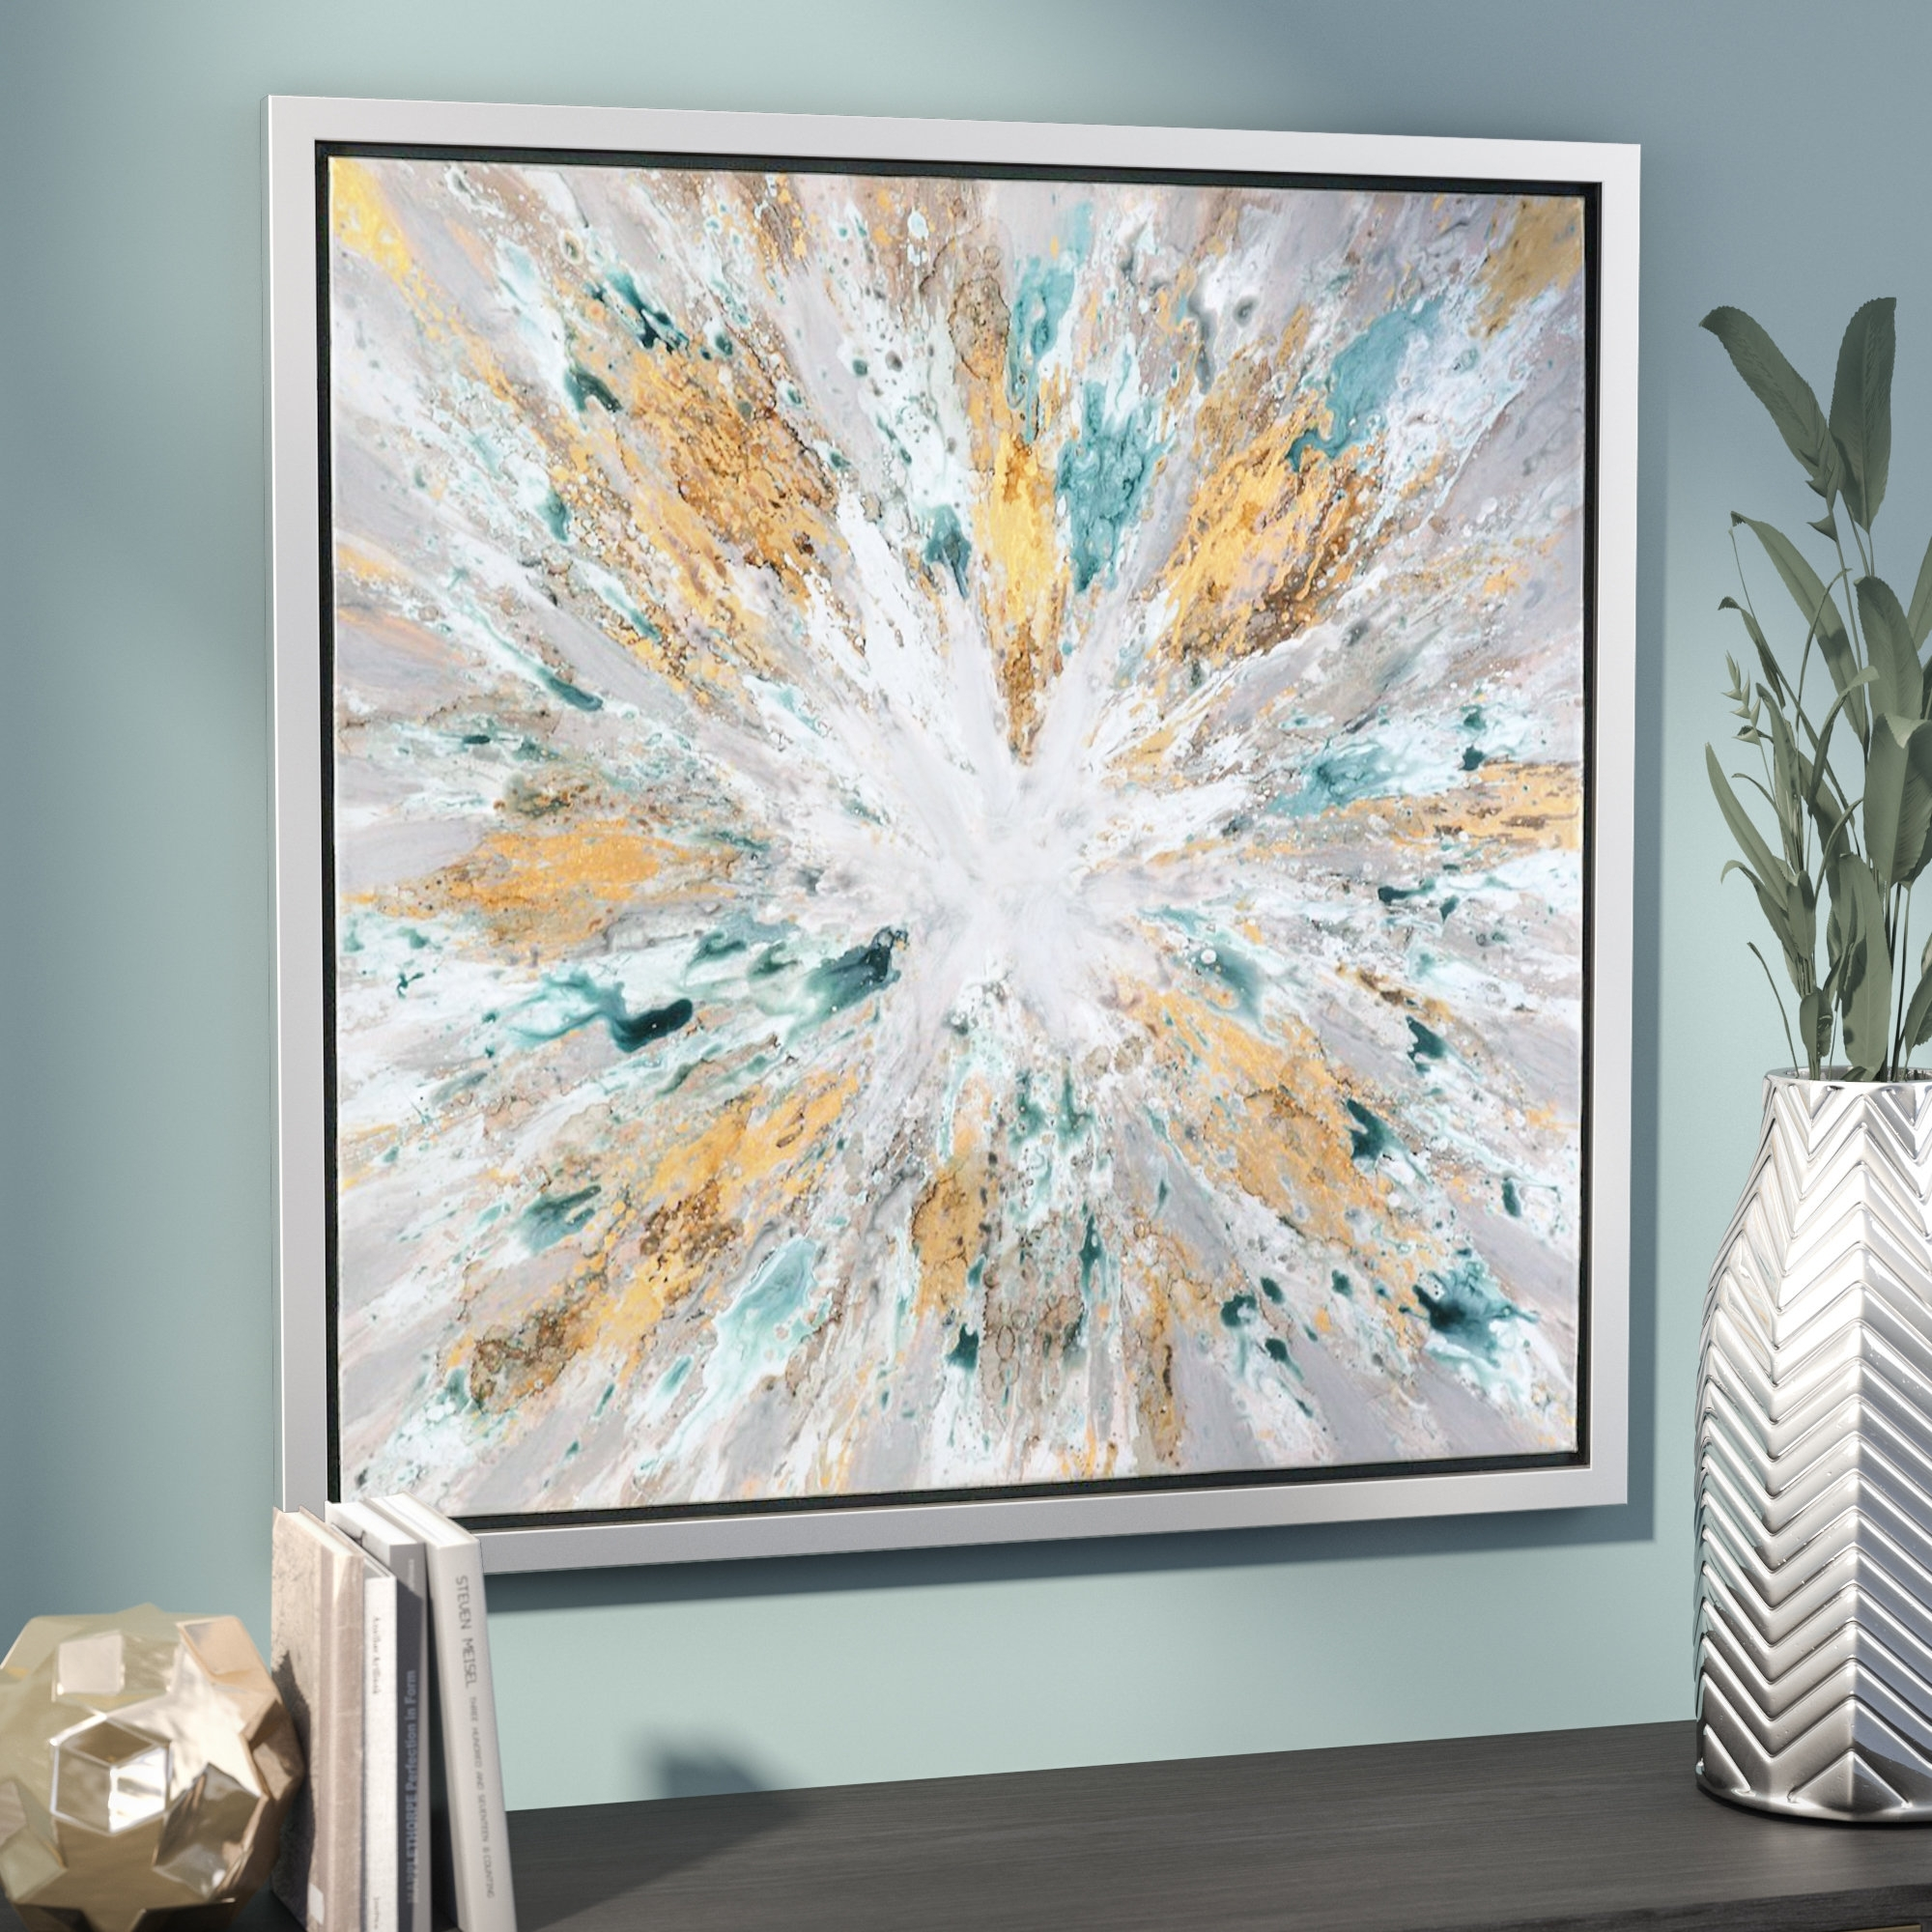 Willa Arlo Interiors 'exploding Star Modern' Abstract Framed Oil Intended For Most Recently Released Ottawa Abstract Wall Art (View 20 of 20)